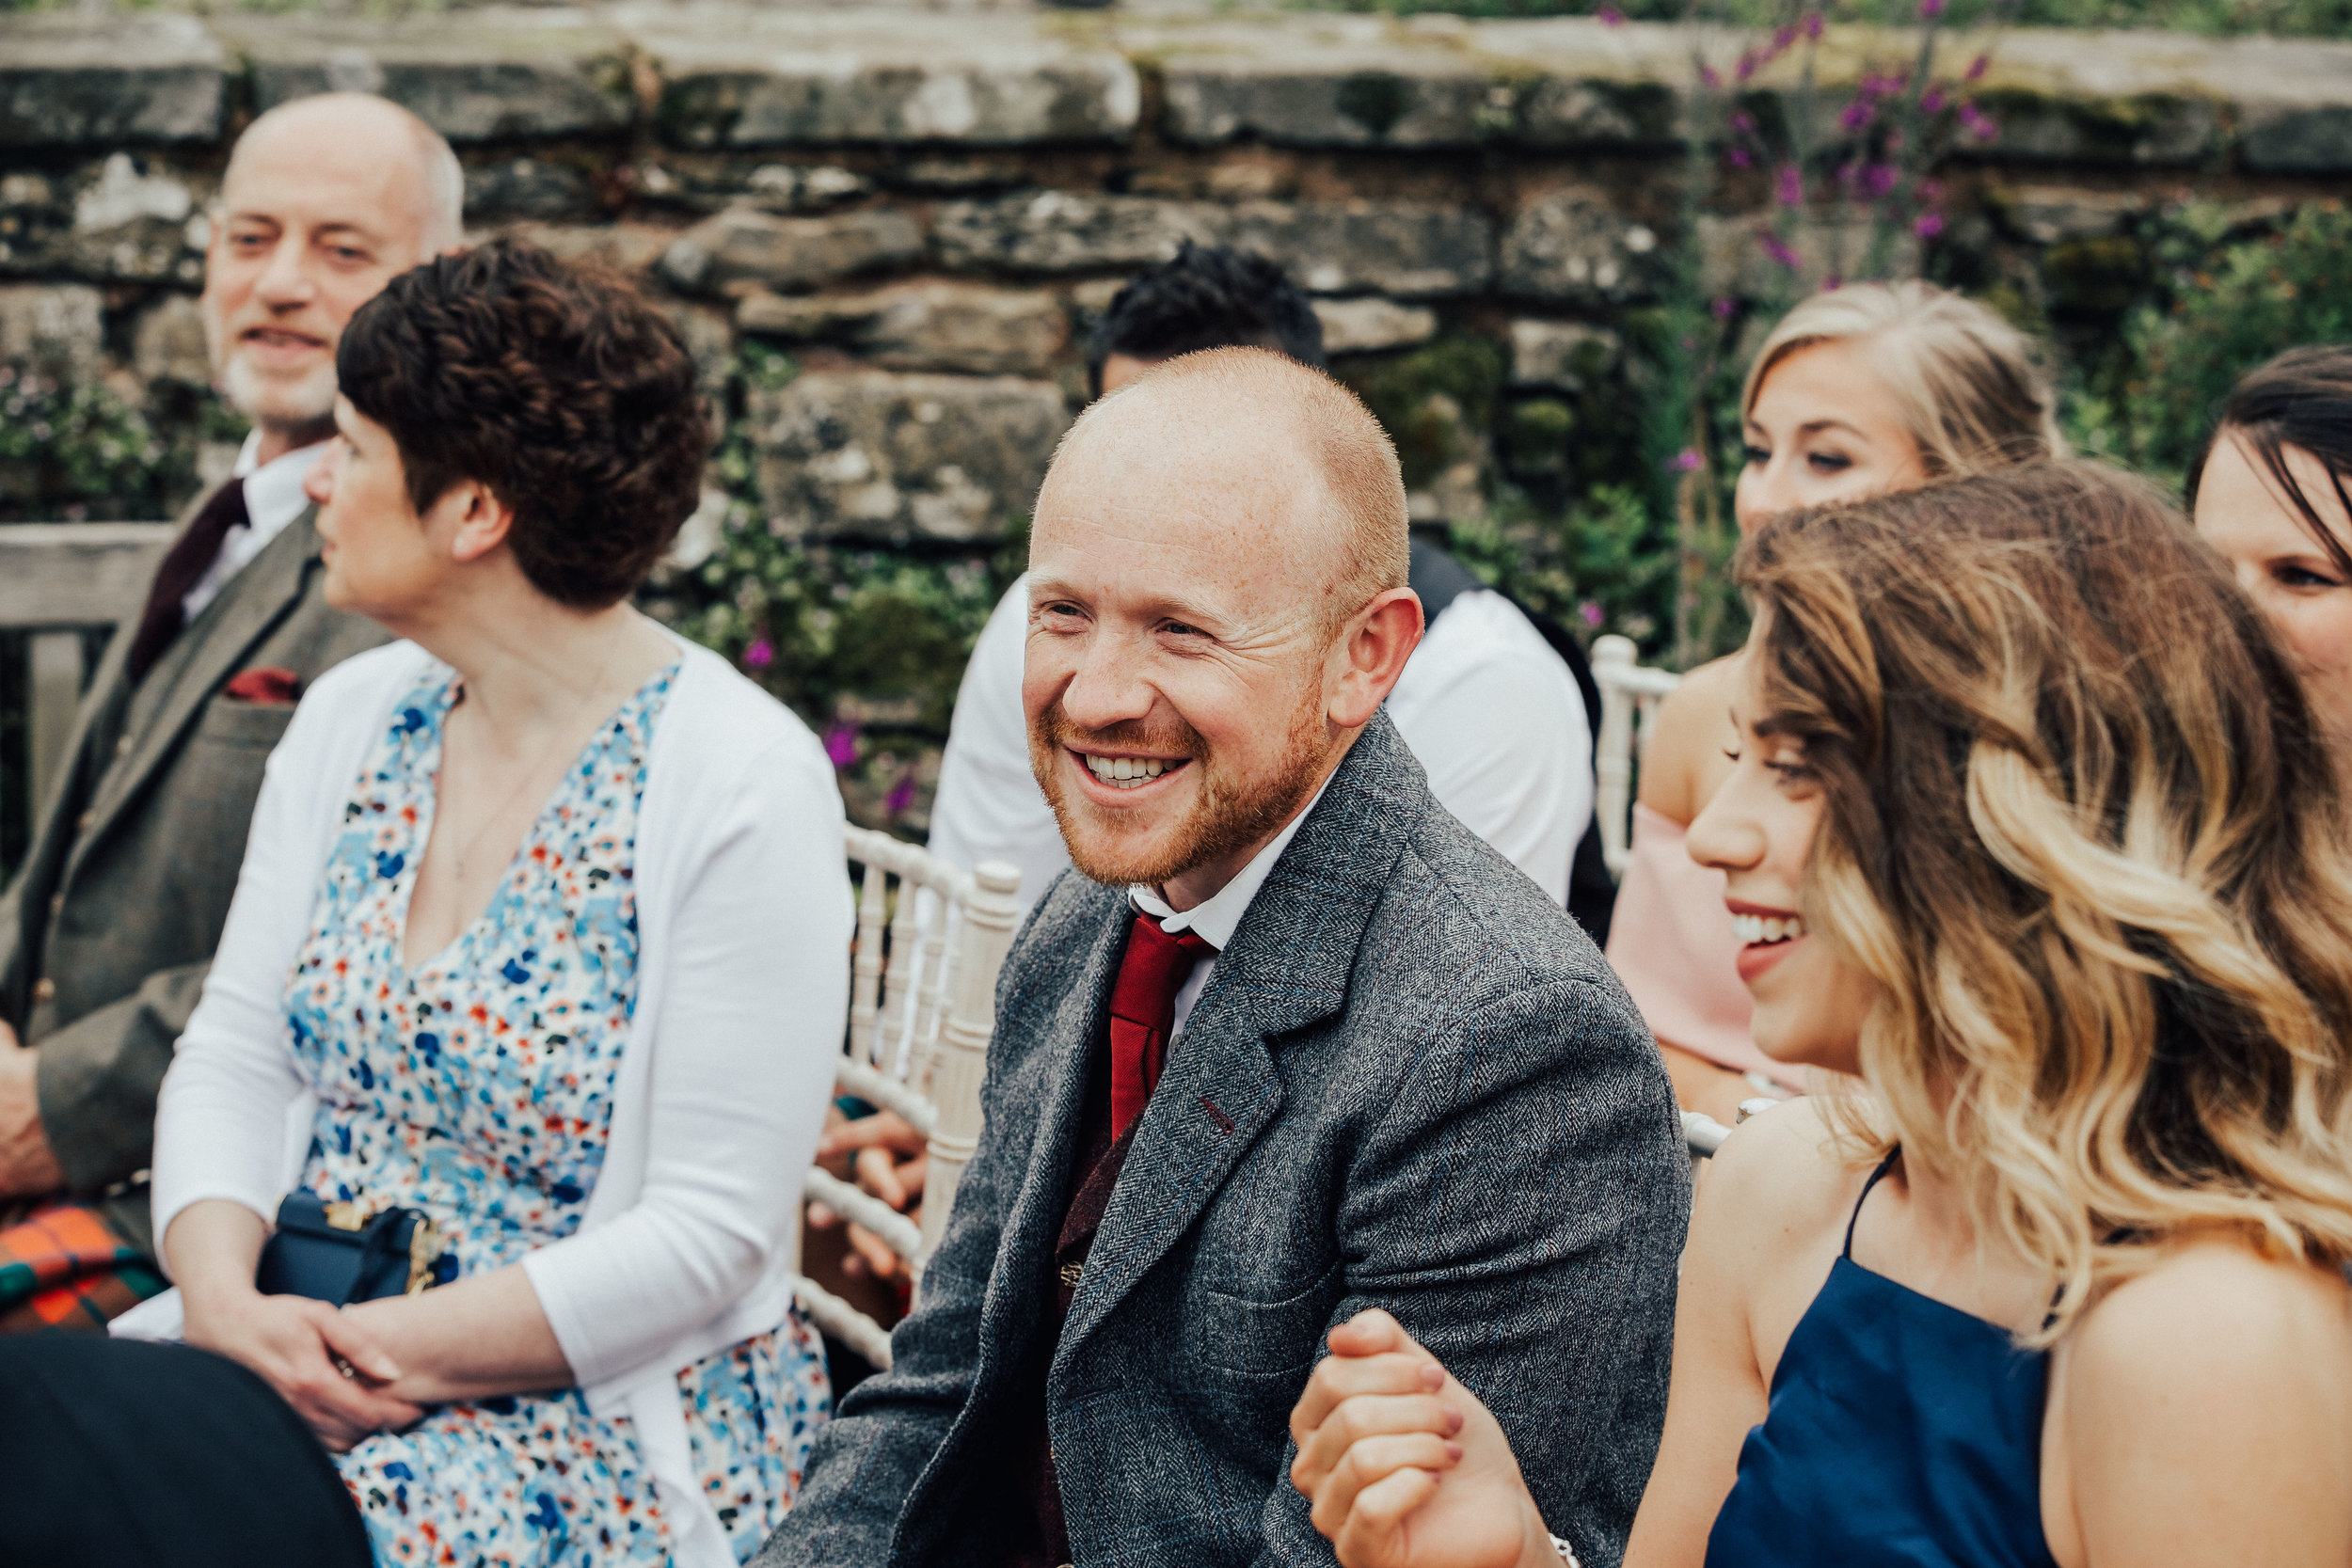 PJ_PHILLIPS_PHOTOGRAPHY_EDINBURGH_WEDDERBURN_BARNS_WEDDING_EDINBURGH_WEDDING_PHOTOGRAPHER_77.jpg